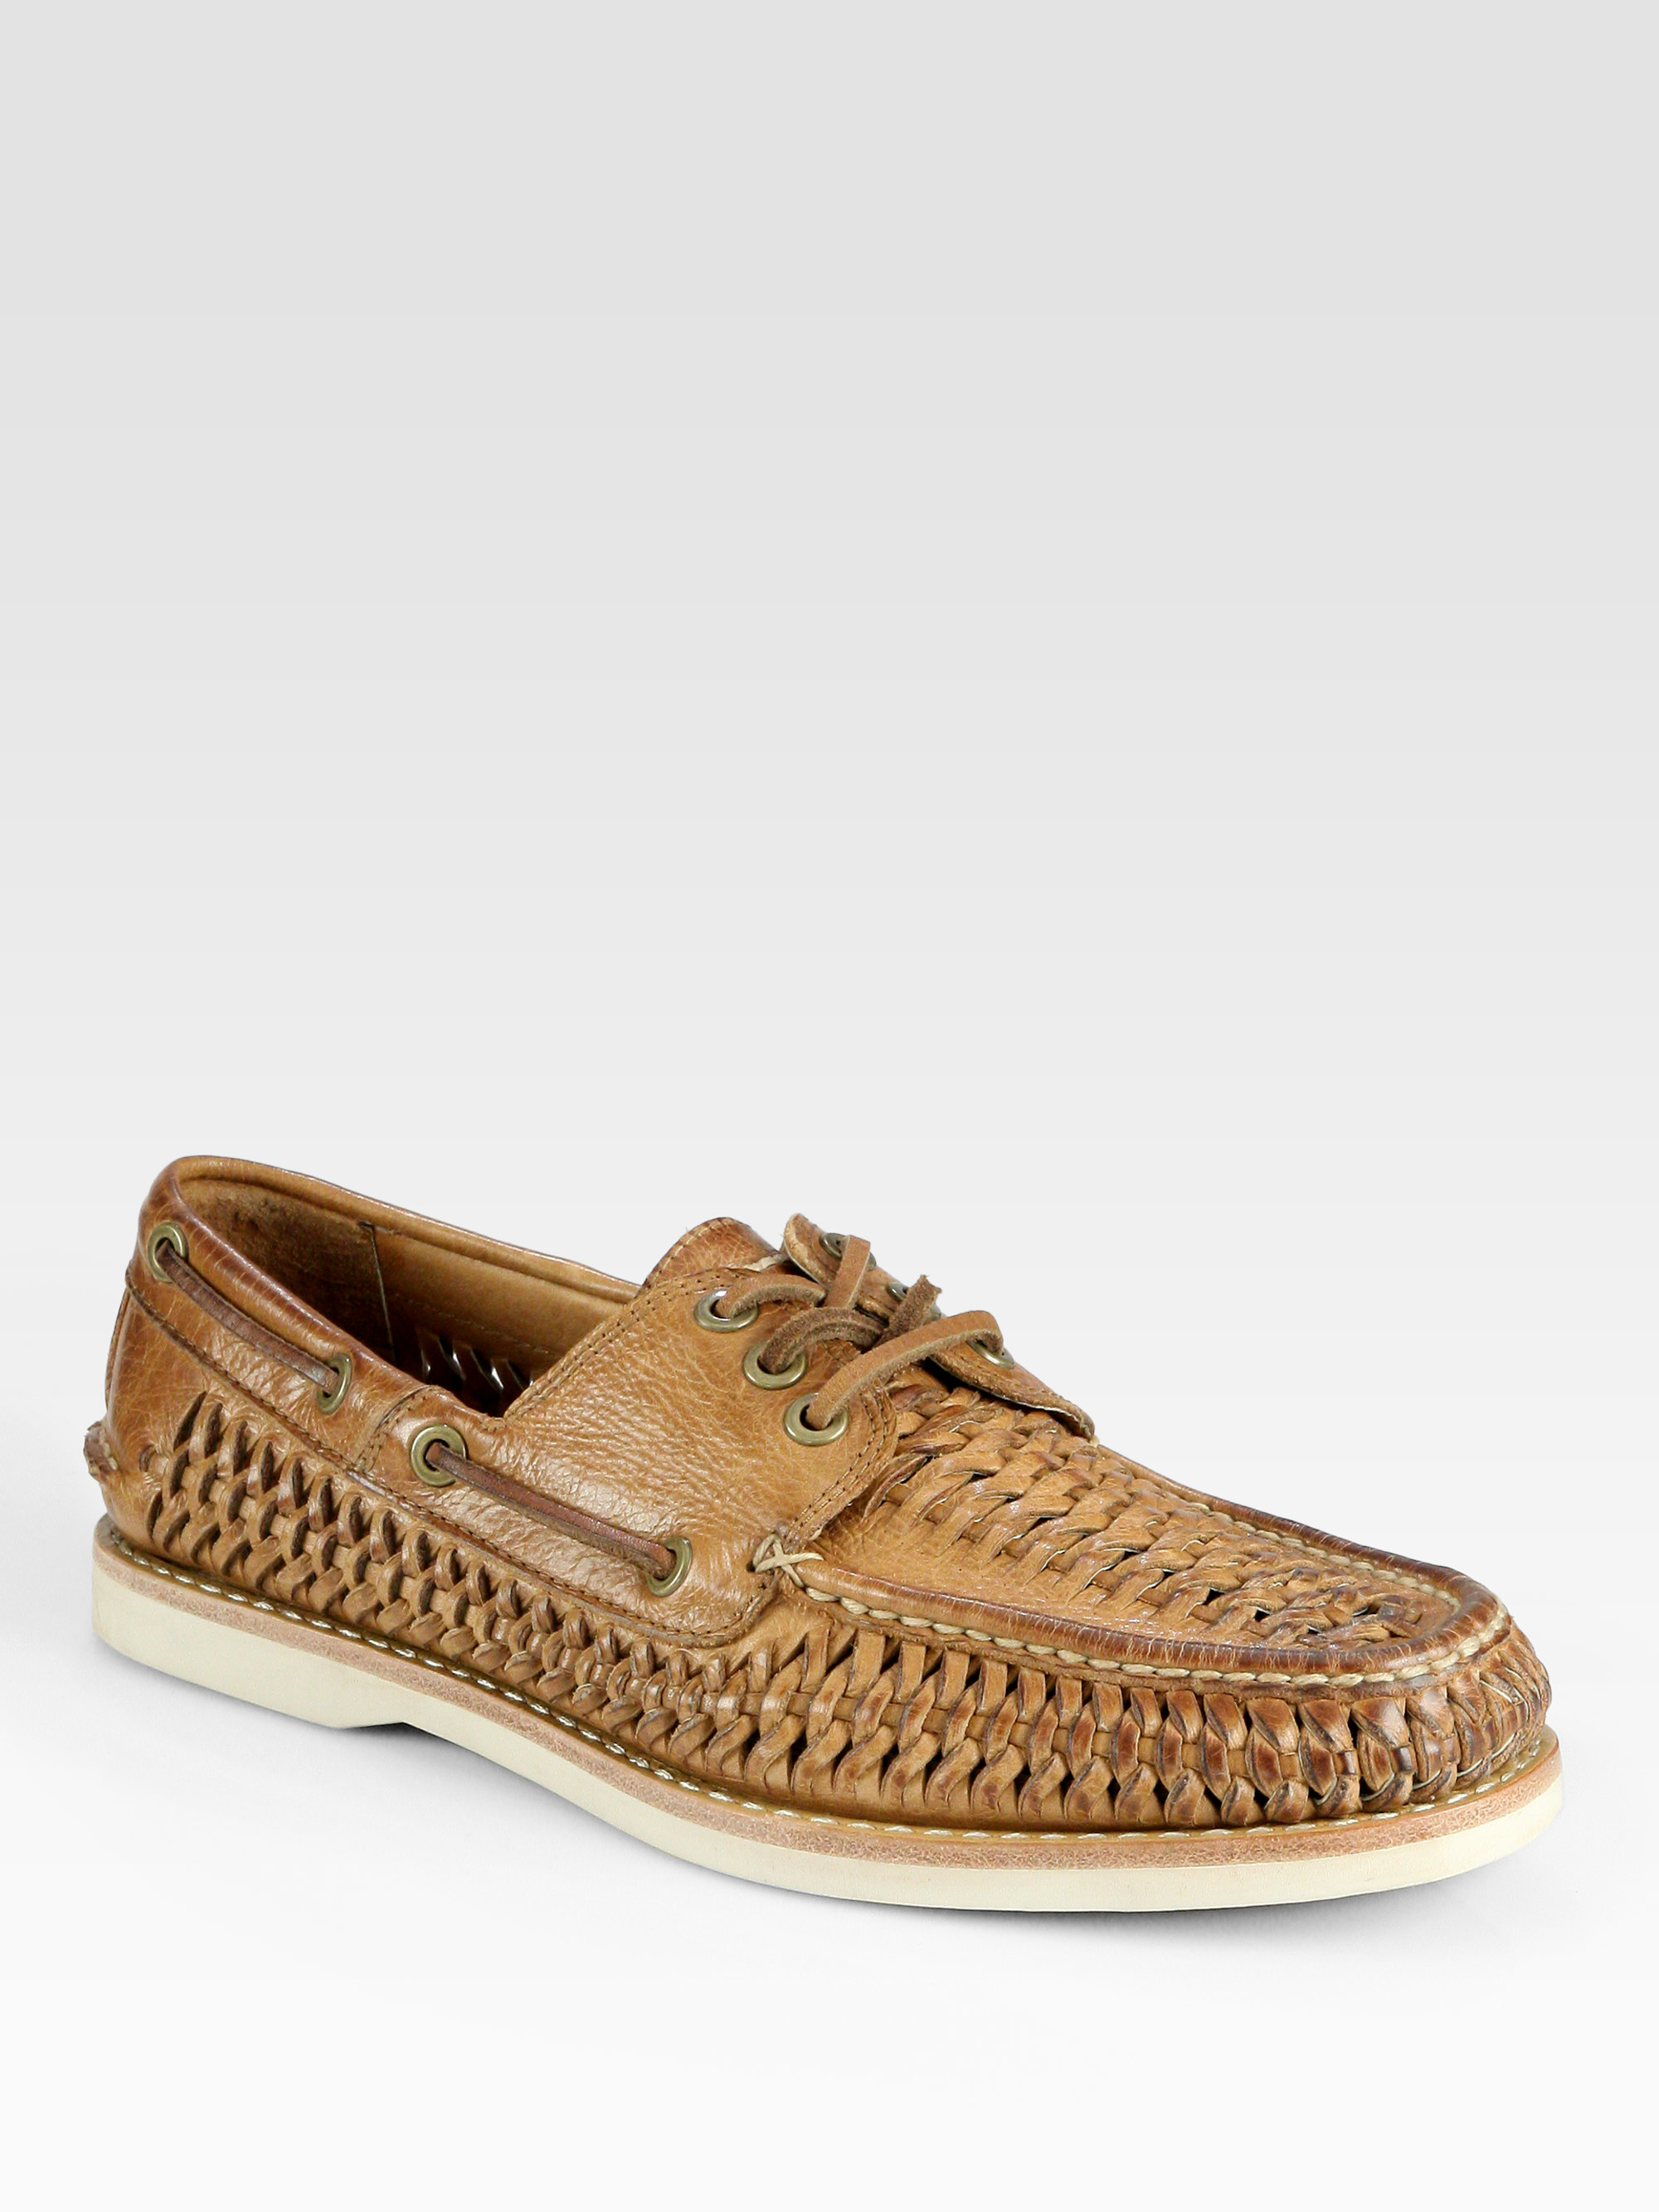 Woven Suede Shoes